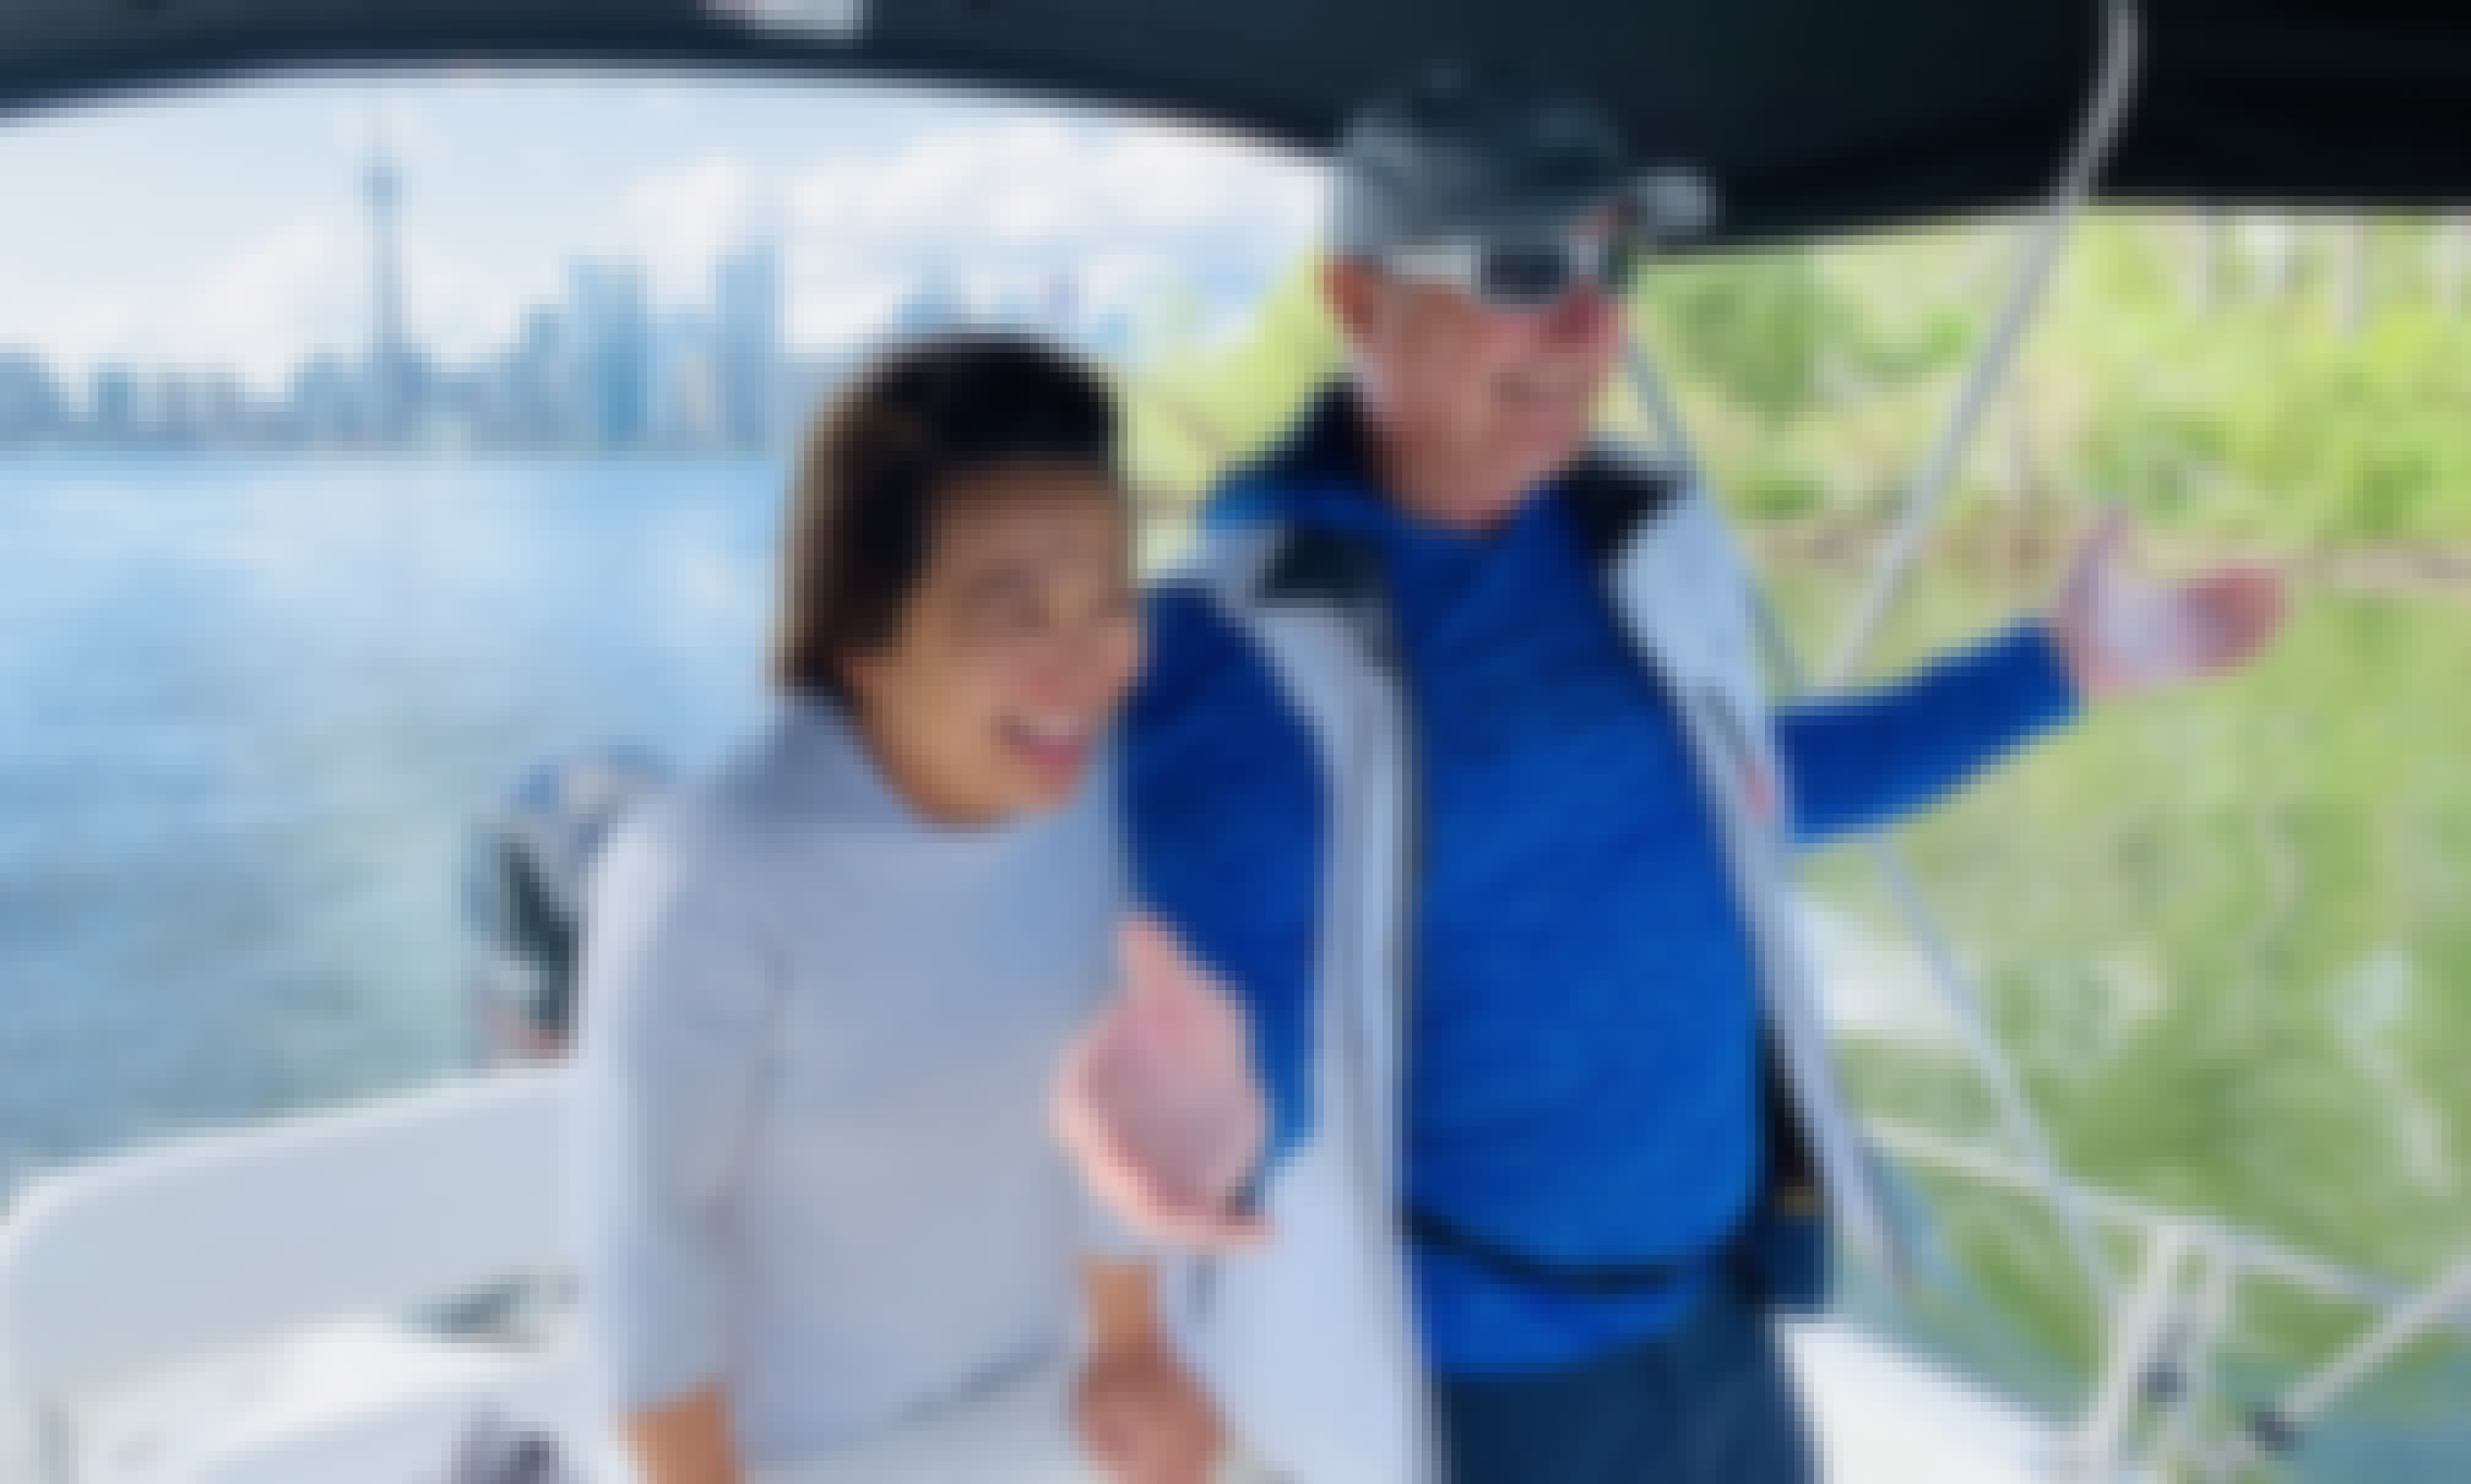 COVID-19 Safe 🧼🛥🧽 Private Charter for Small Groups up to 4